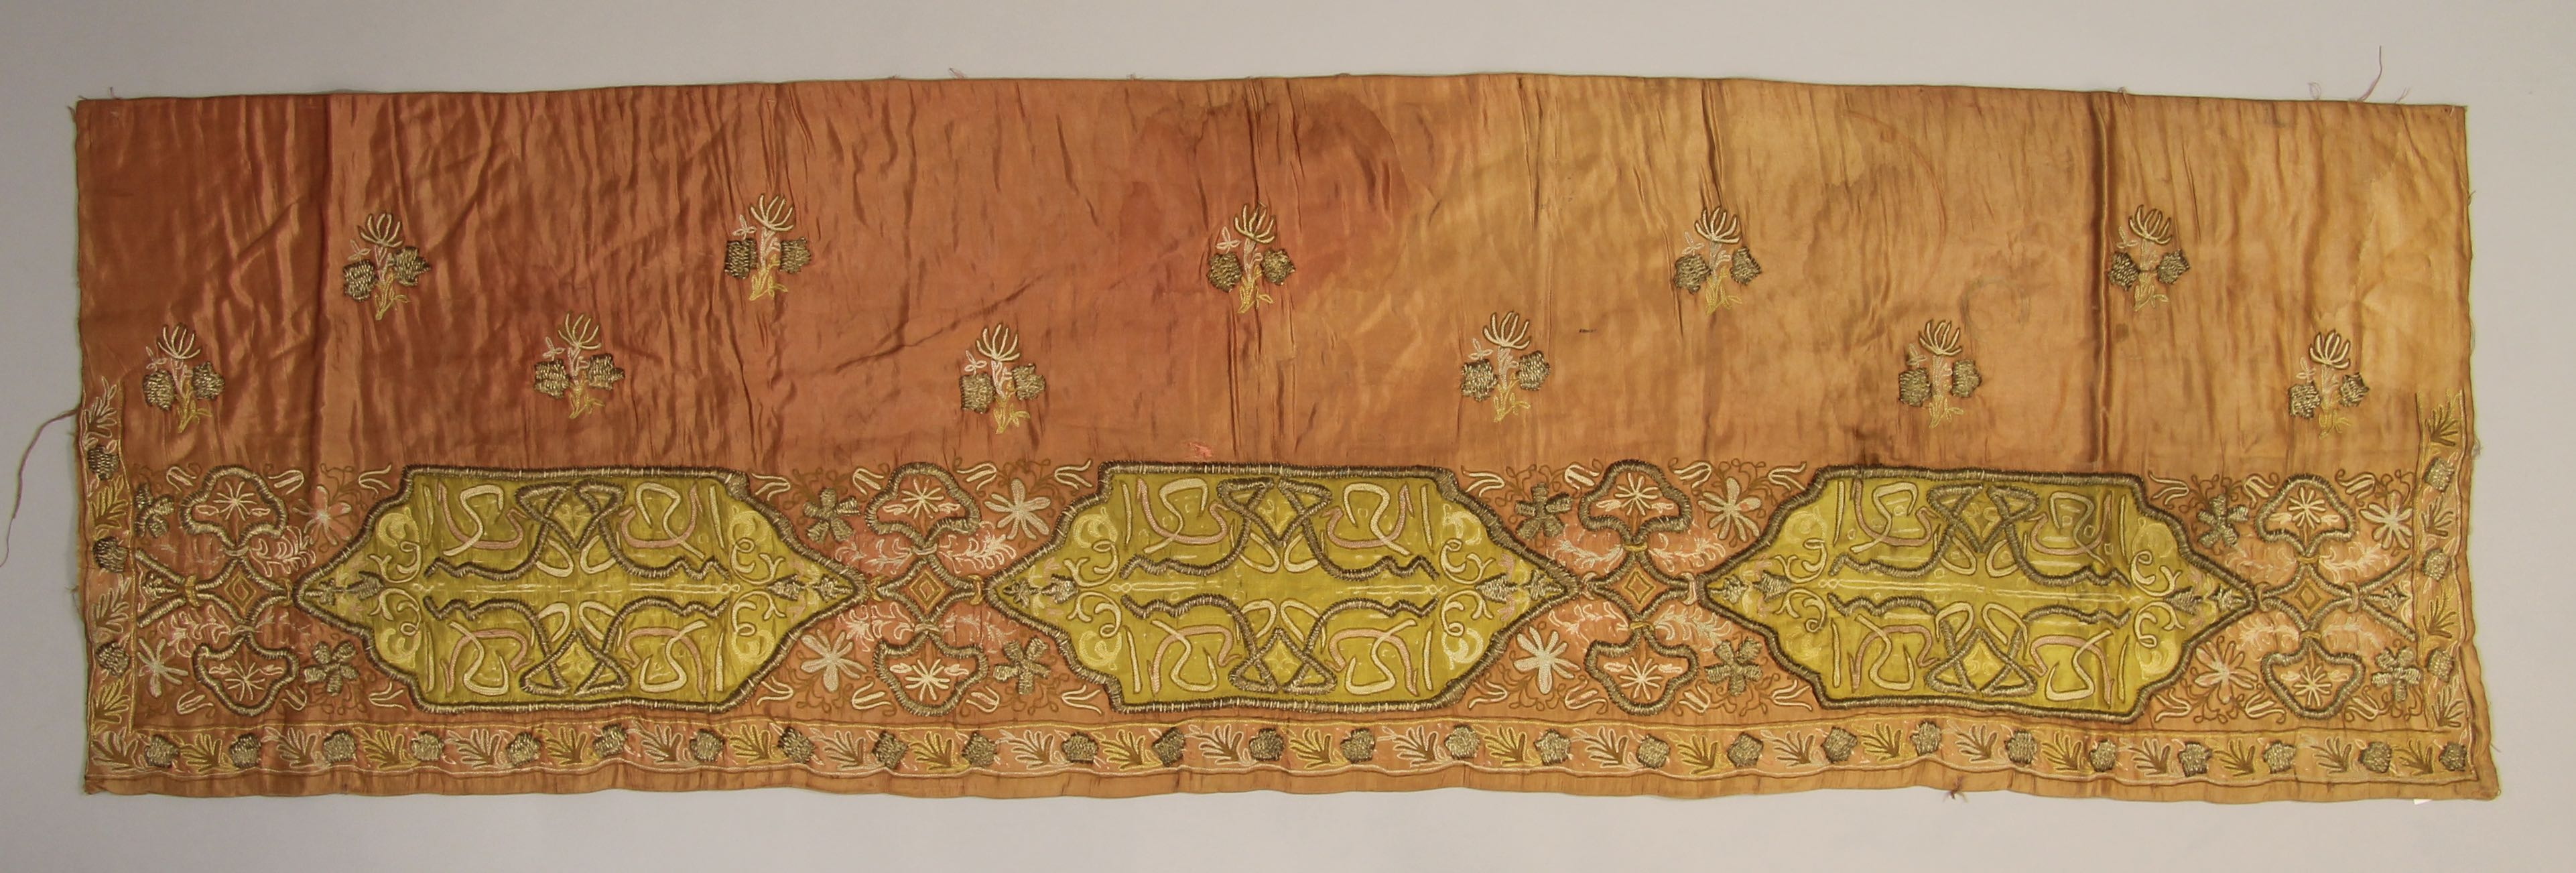 Embroidered panel (valance?)